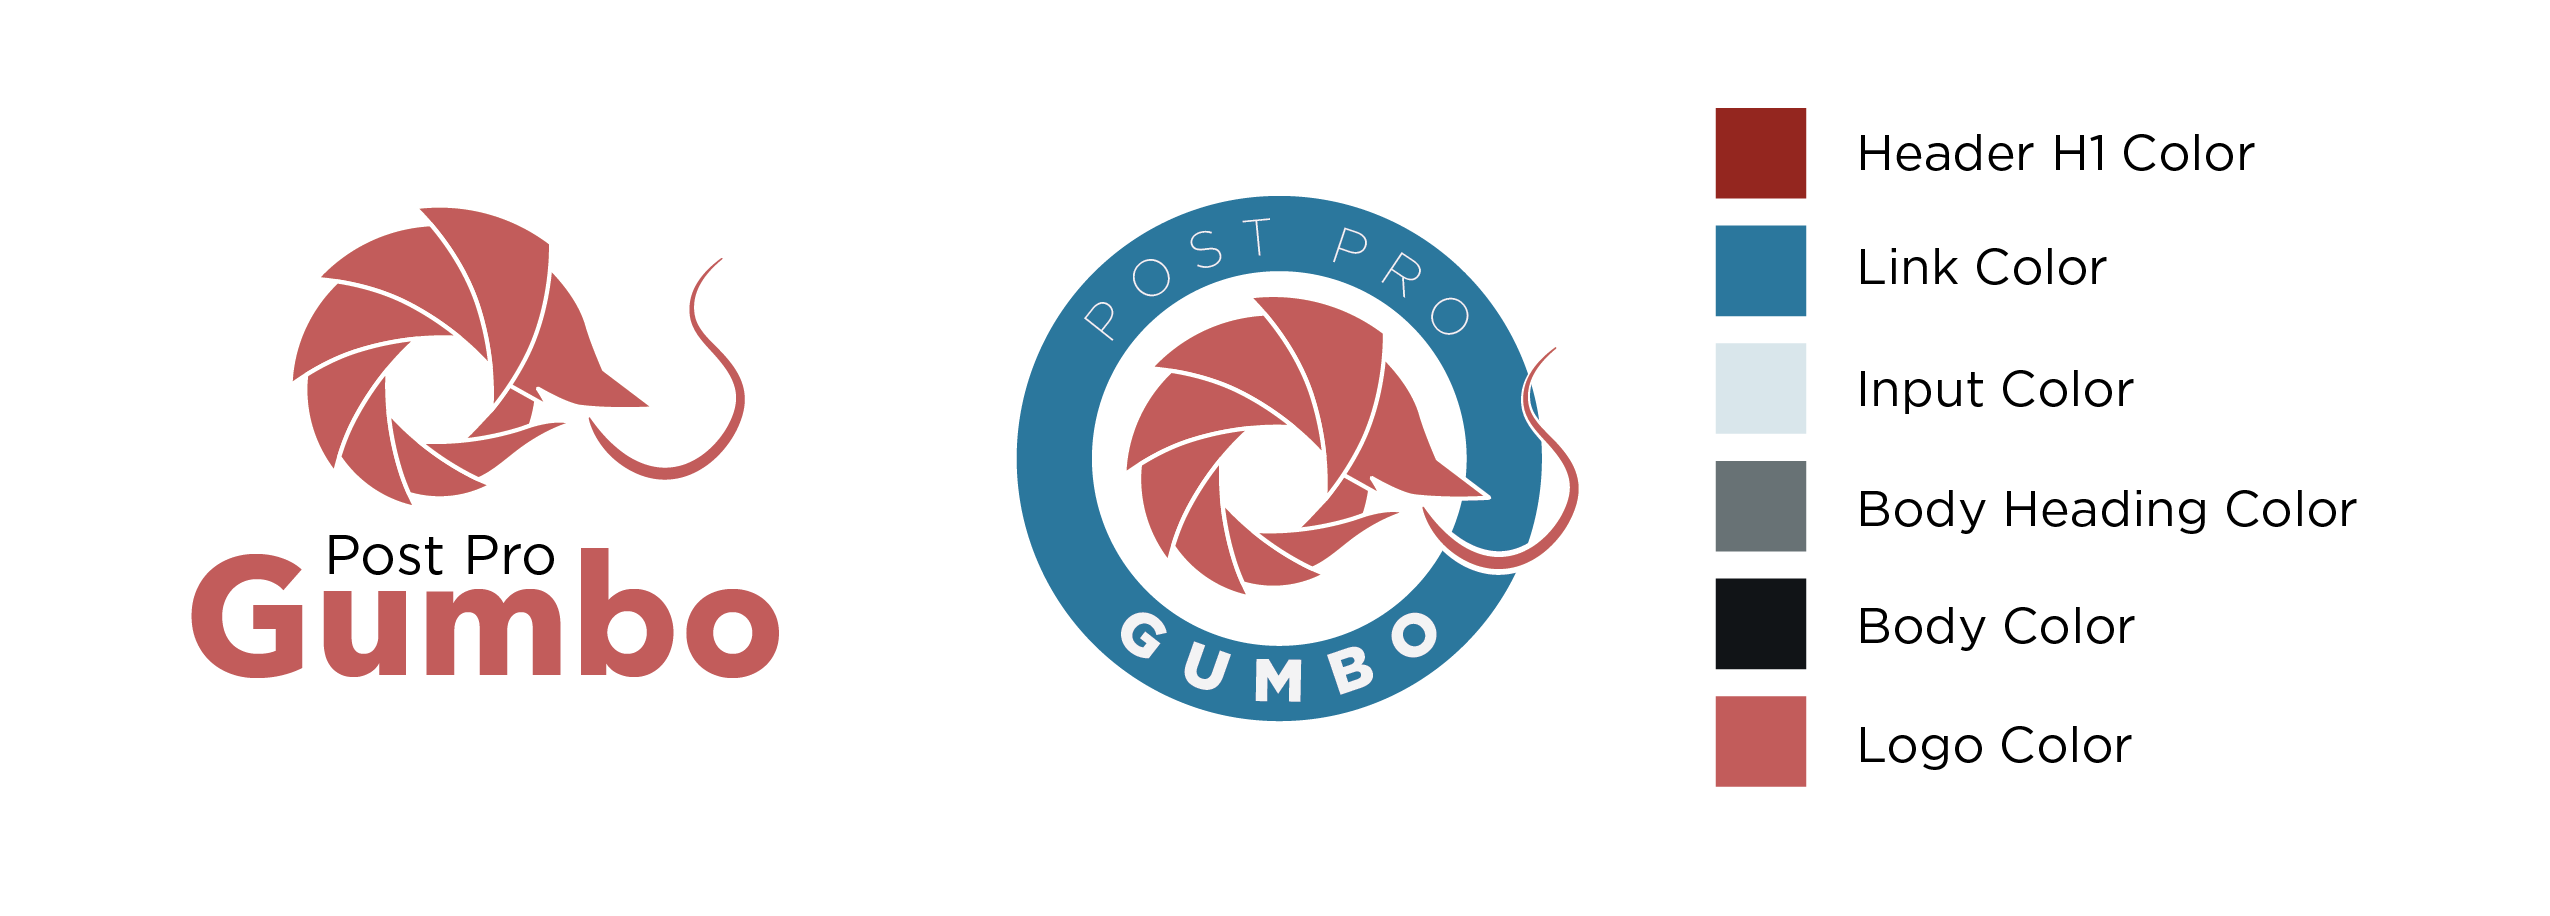 Post Pro Gumbo color and branding